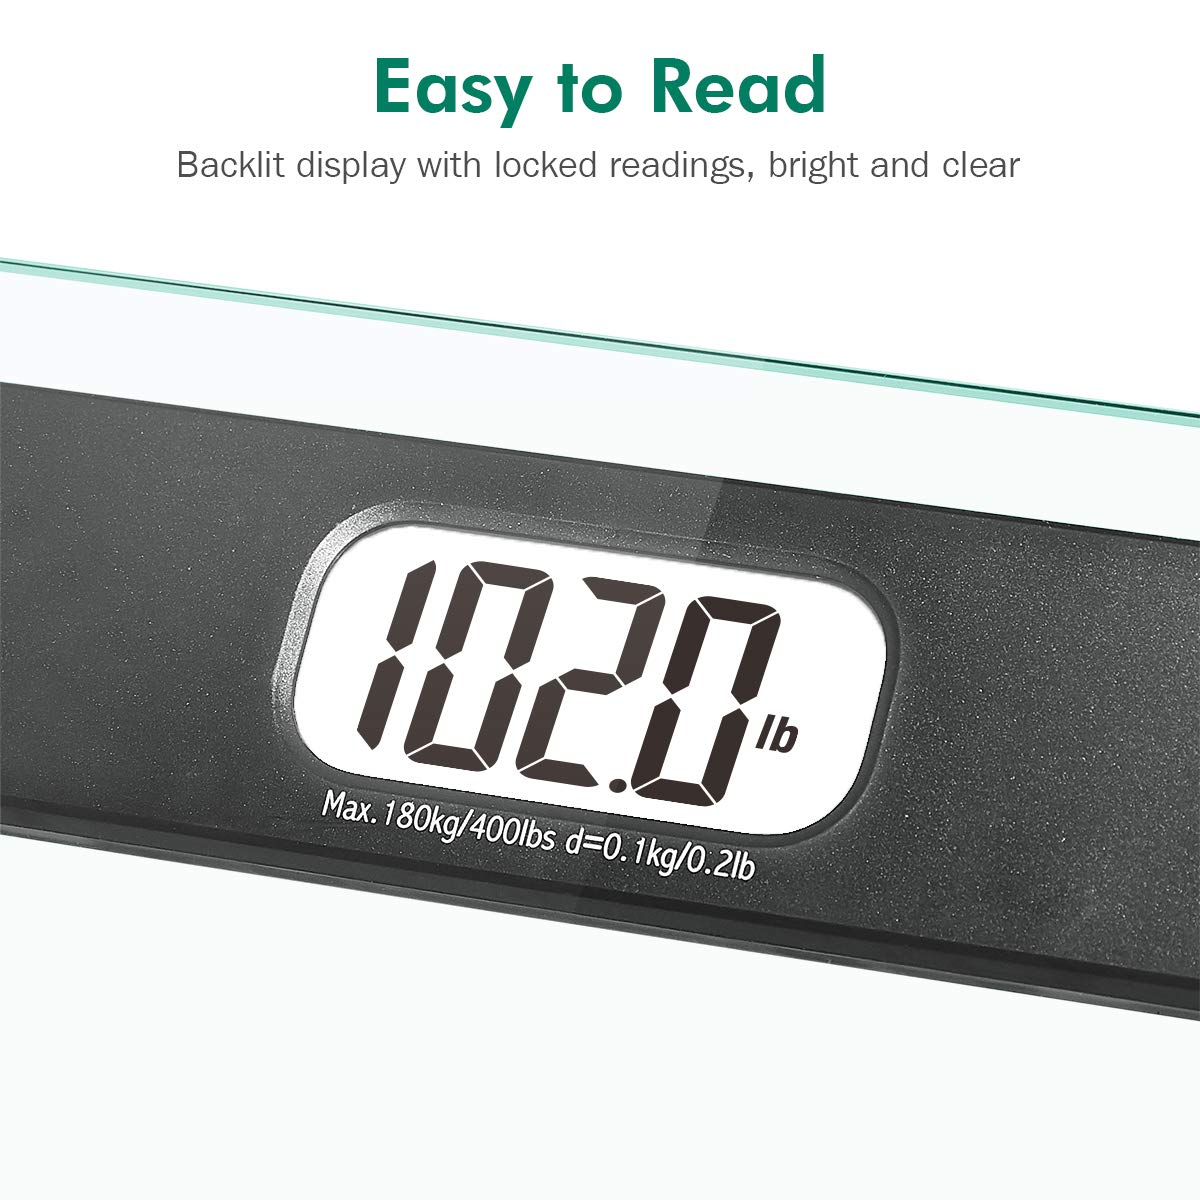 Beautural Precision Digital Body Weight Bathroom Scale with Lighted Display, Step-On Technology, 400 lb by Beautural (Image #5)